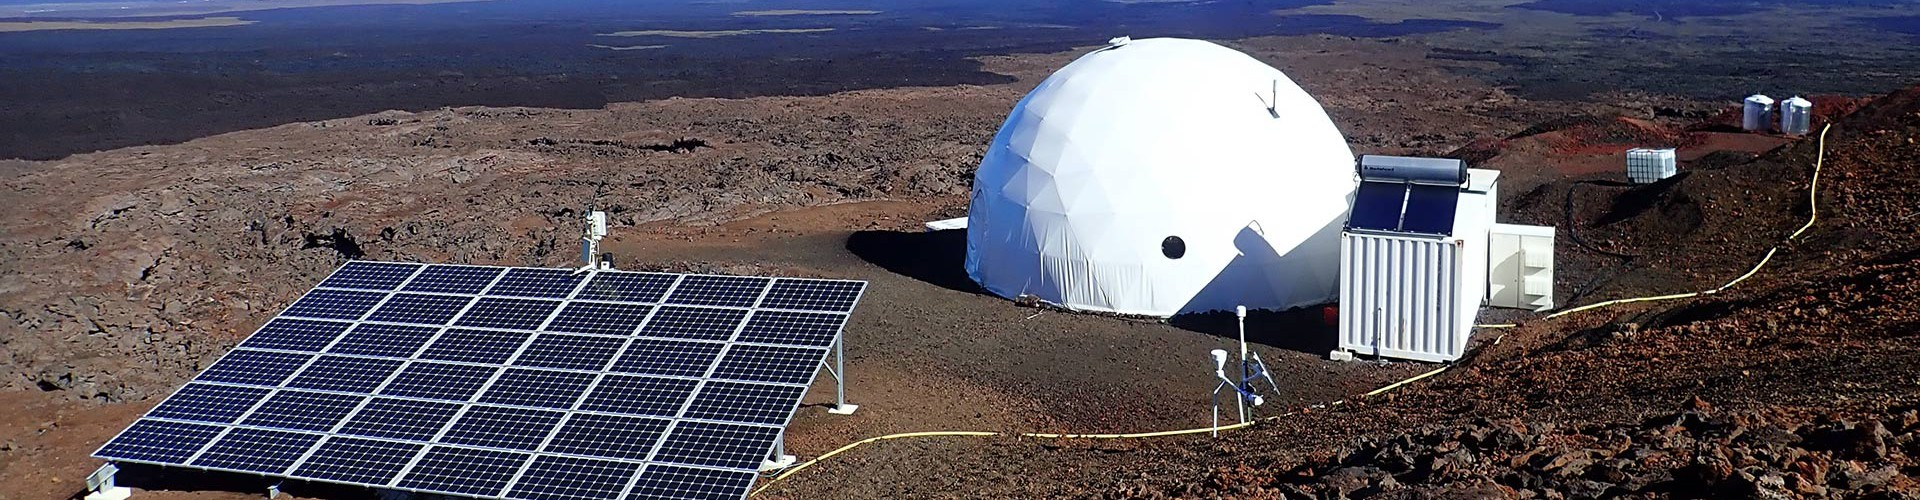 The HI-SEAS analog astronaut training facility high on Mauna Loa, Hawaii (Credit: HI-SEAS)